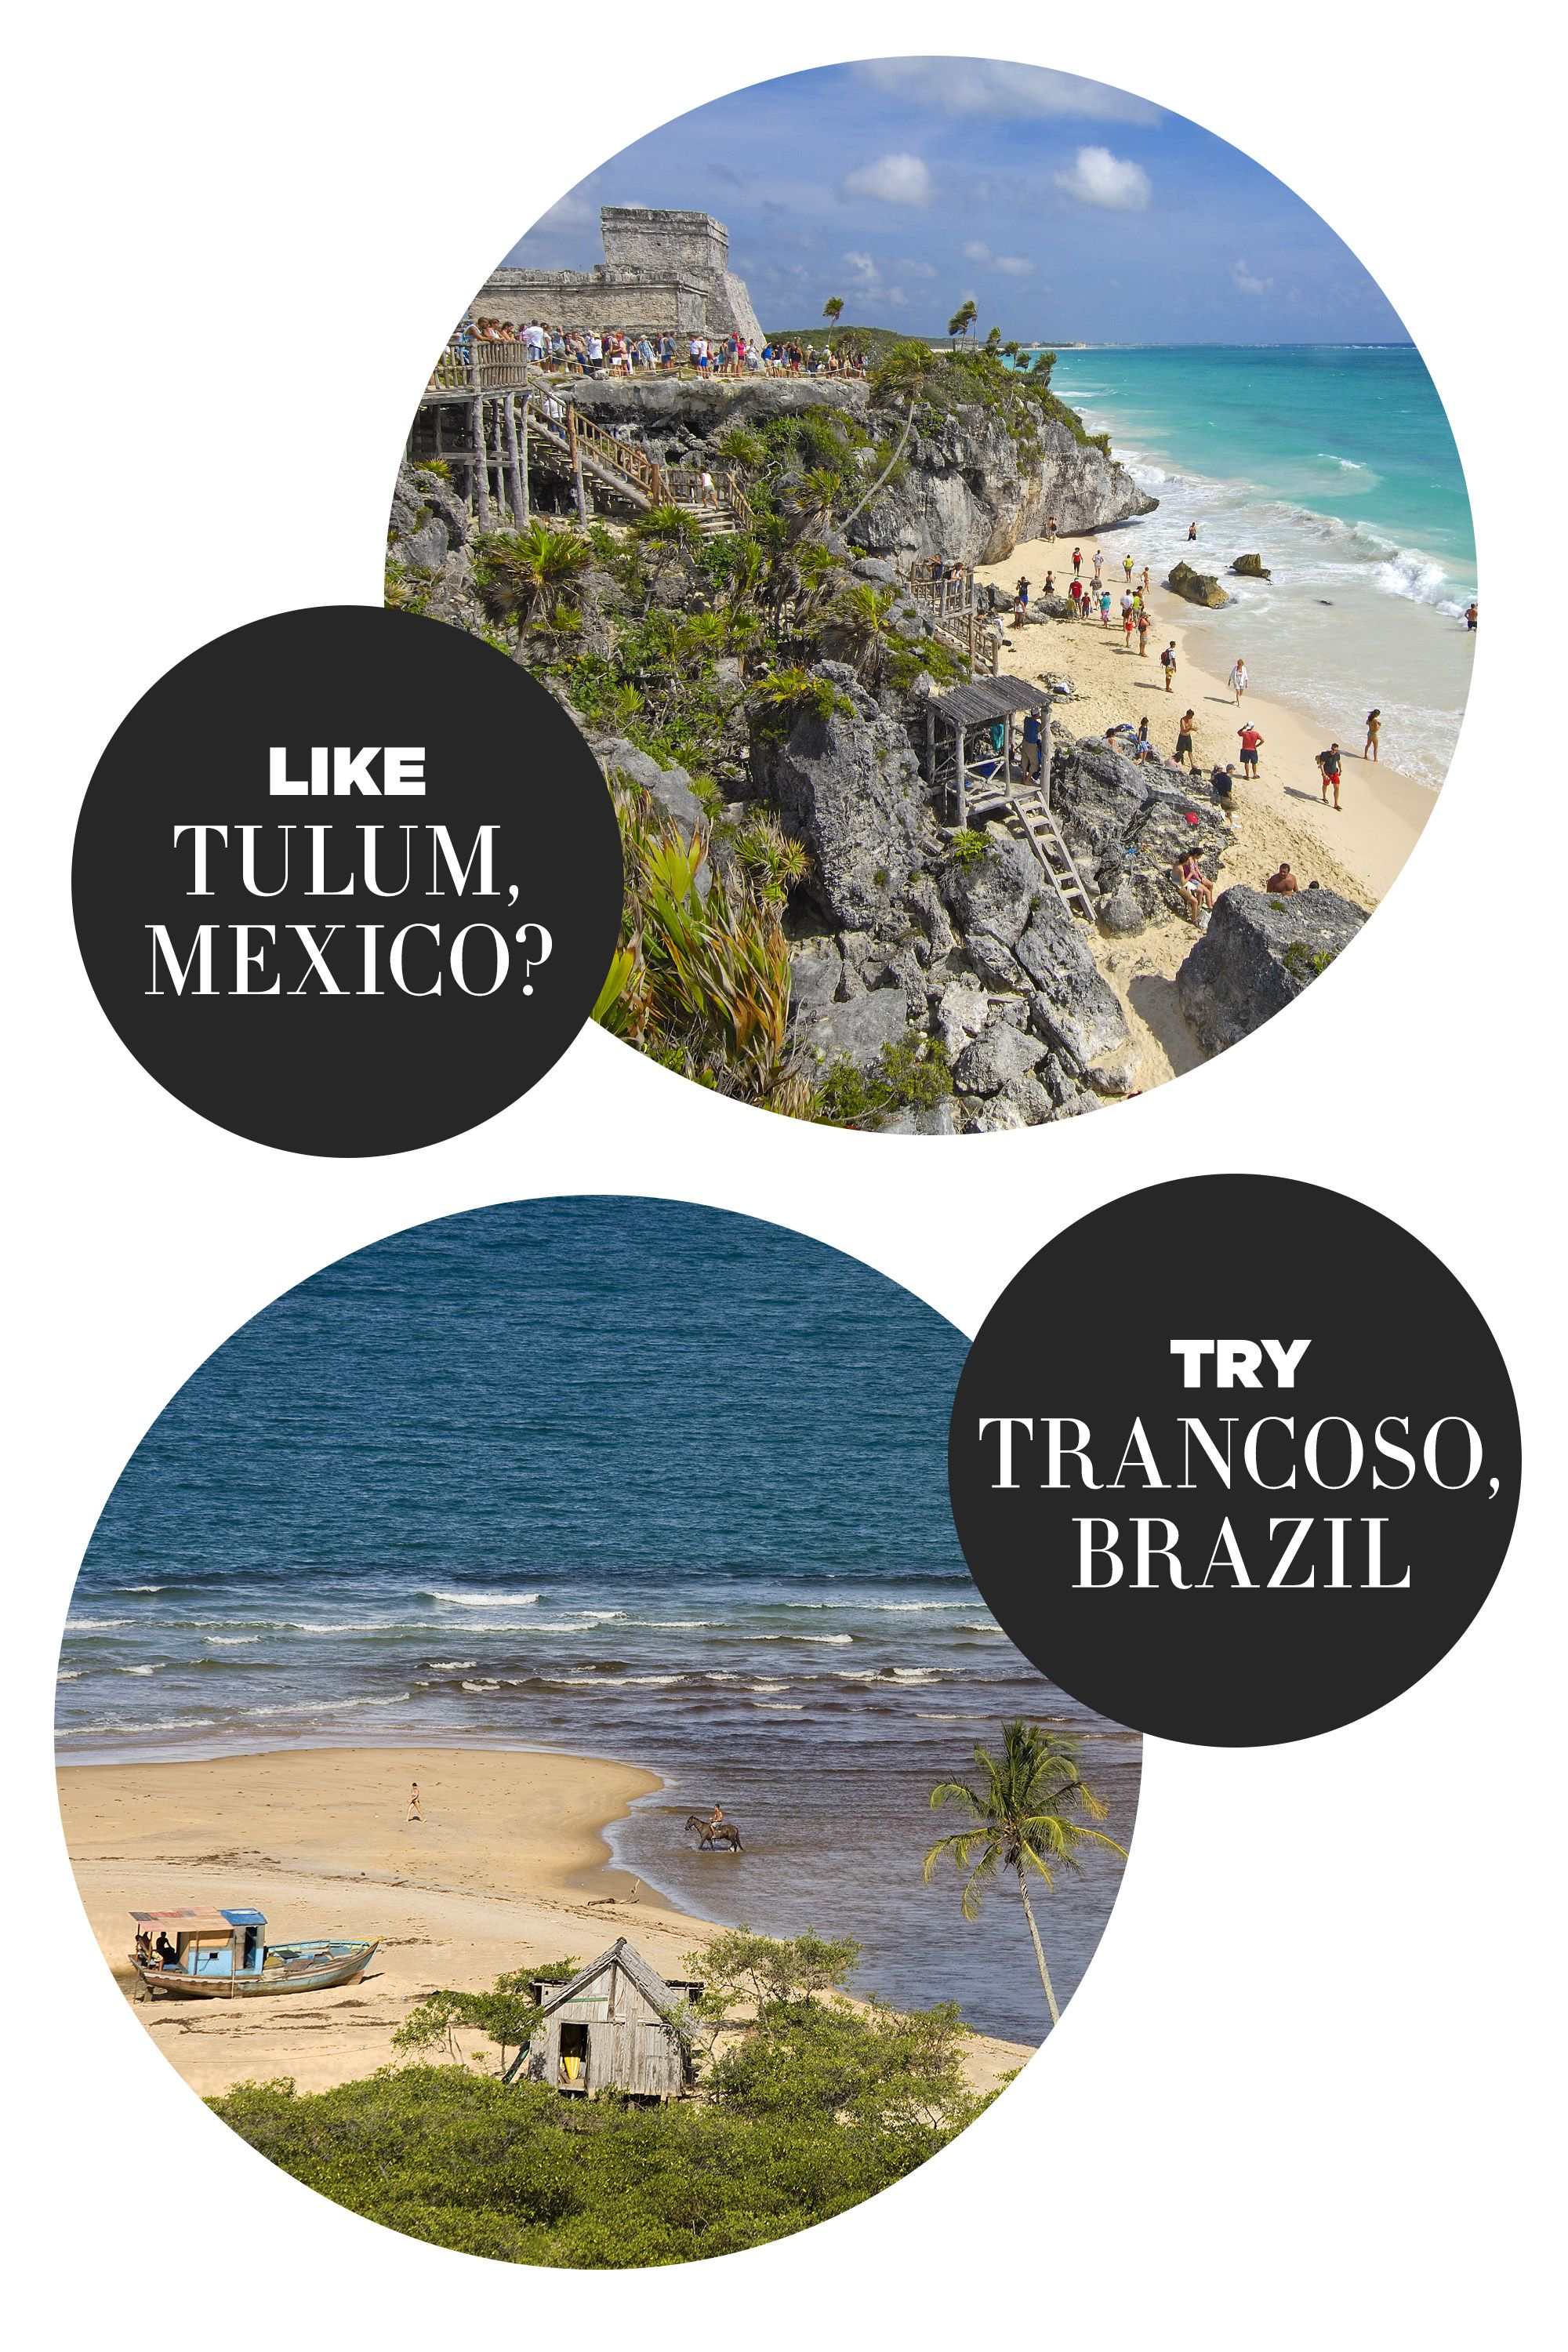 """<p>""""Next year, all eyes will be on Brazil when Rio hosts the Olympics. Trancoso is a great off-the-beaten-path destination for travelers in search of the next bohemian paradise.""""</p><p><strong>Highlights: </strong>A glamorous, secluded beach getaway of palm trees and endless Instagrams. Like Tulum, Trancoso is destined to be a favorite amongst the fashion set.</p><p><strong>Stay at:</strong> <a href=""""https://www.kiwicollection.com/hotel-detail/uxua-casa-hotel"""" target=""""_blank"""">UXUA Casa Hotel & Spa</a></p>"""